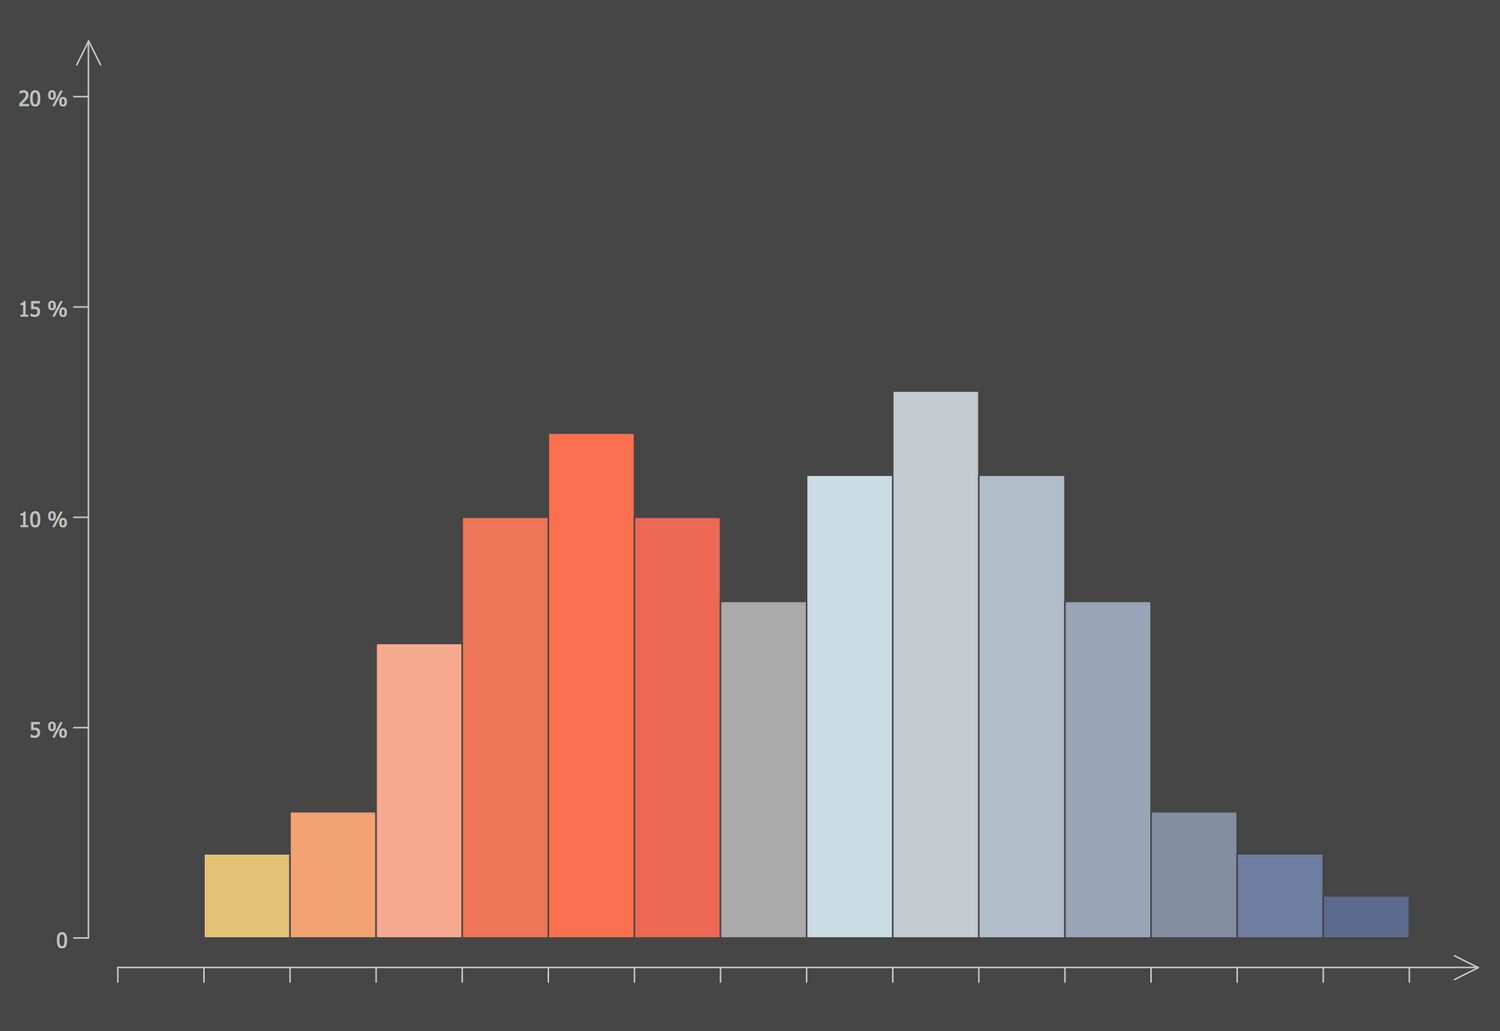 Histogram — Mixture of Two Populations